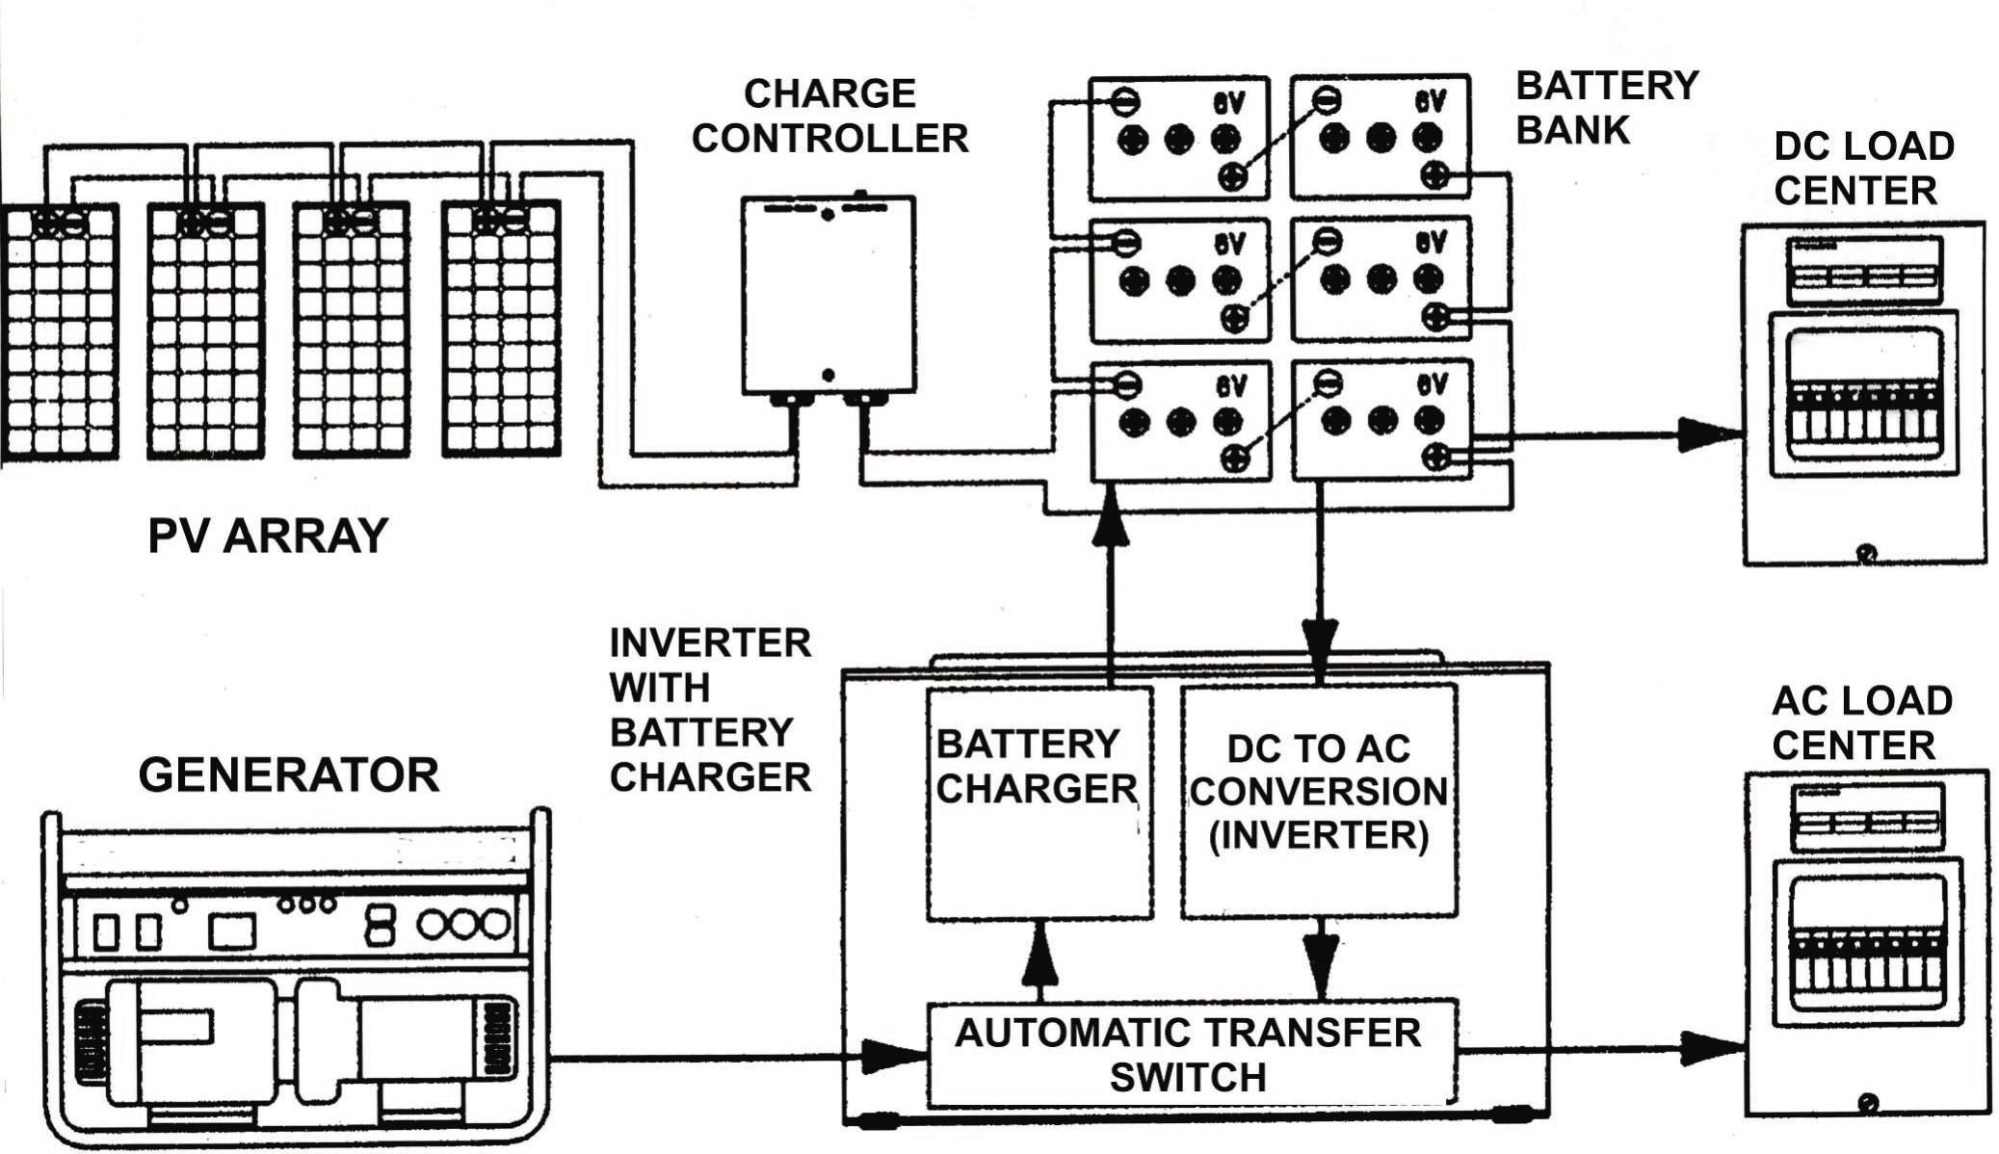 hight resolution of generac battery charger wiring diagram new wiring diagram image generac wheelhouse 5500 watt generator generac generator wiring diagram solar